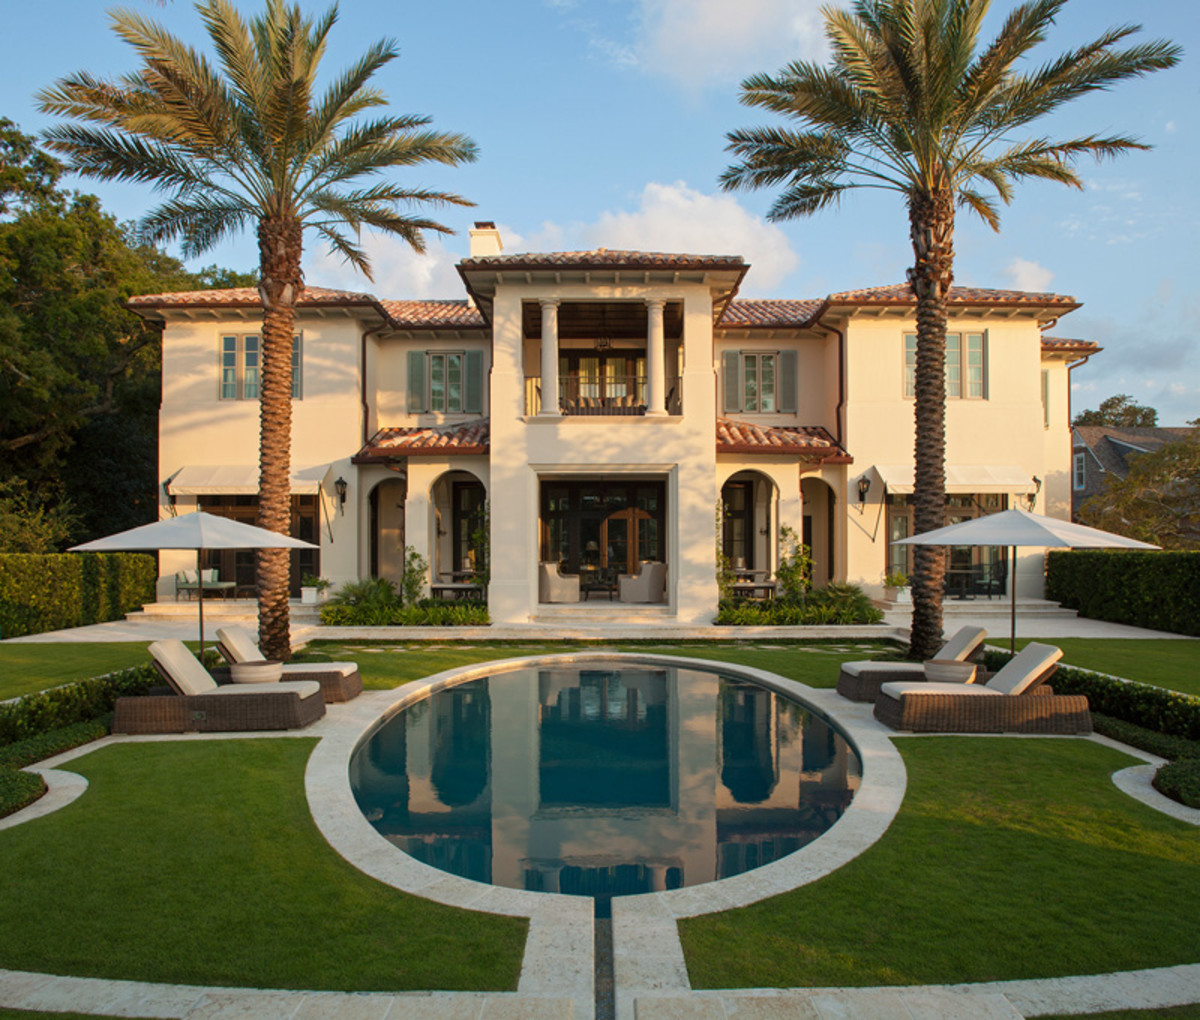 Elevation Mediterranean Architecture Style House Plans: 2016 Palladio Awards: New Mediterranean-Style Traditional